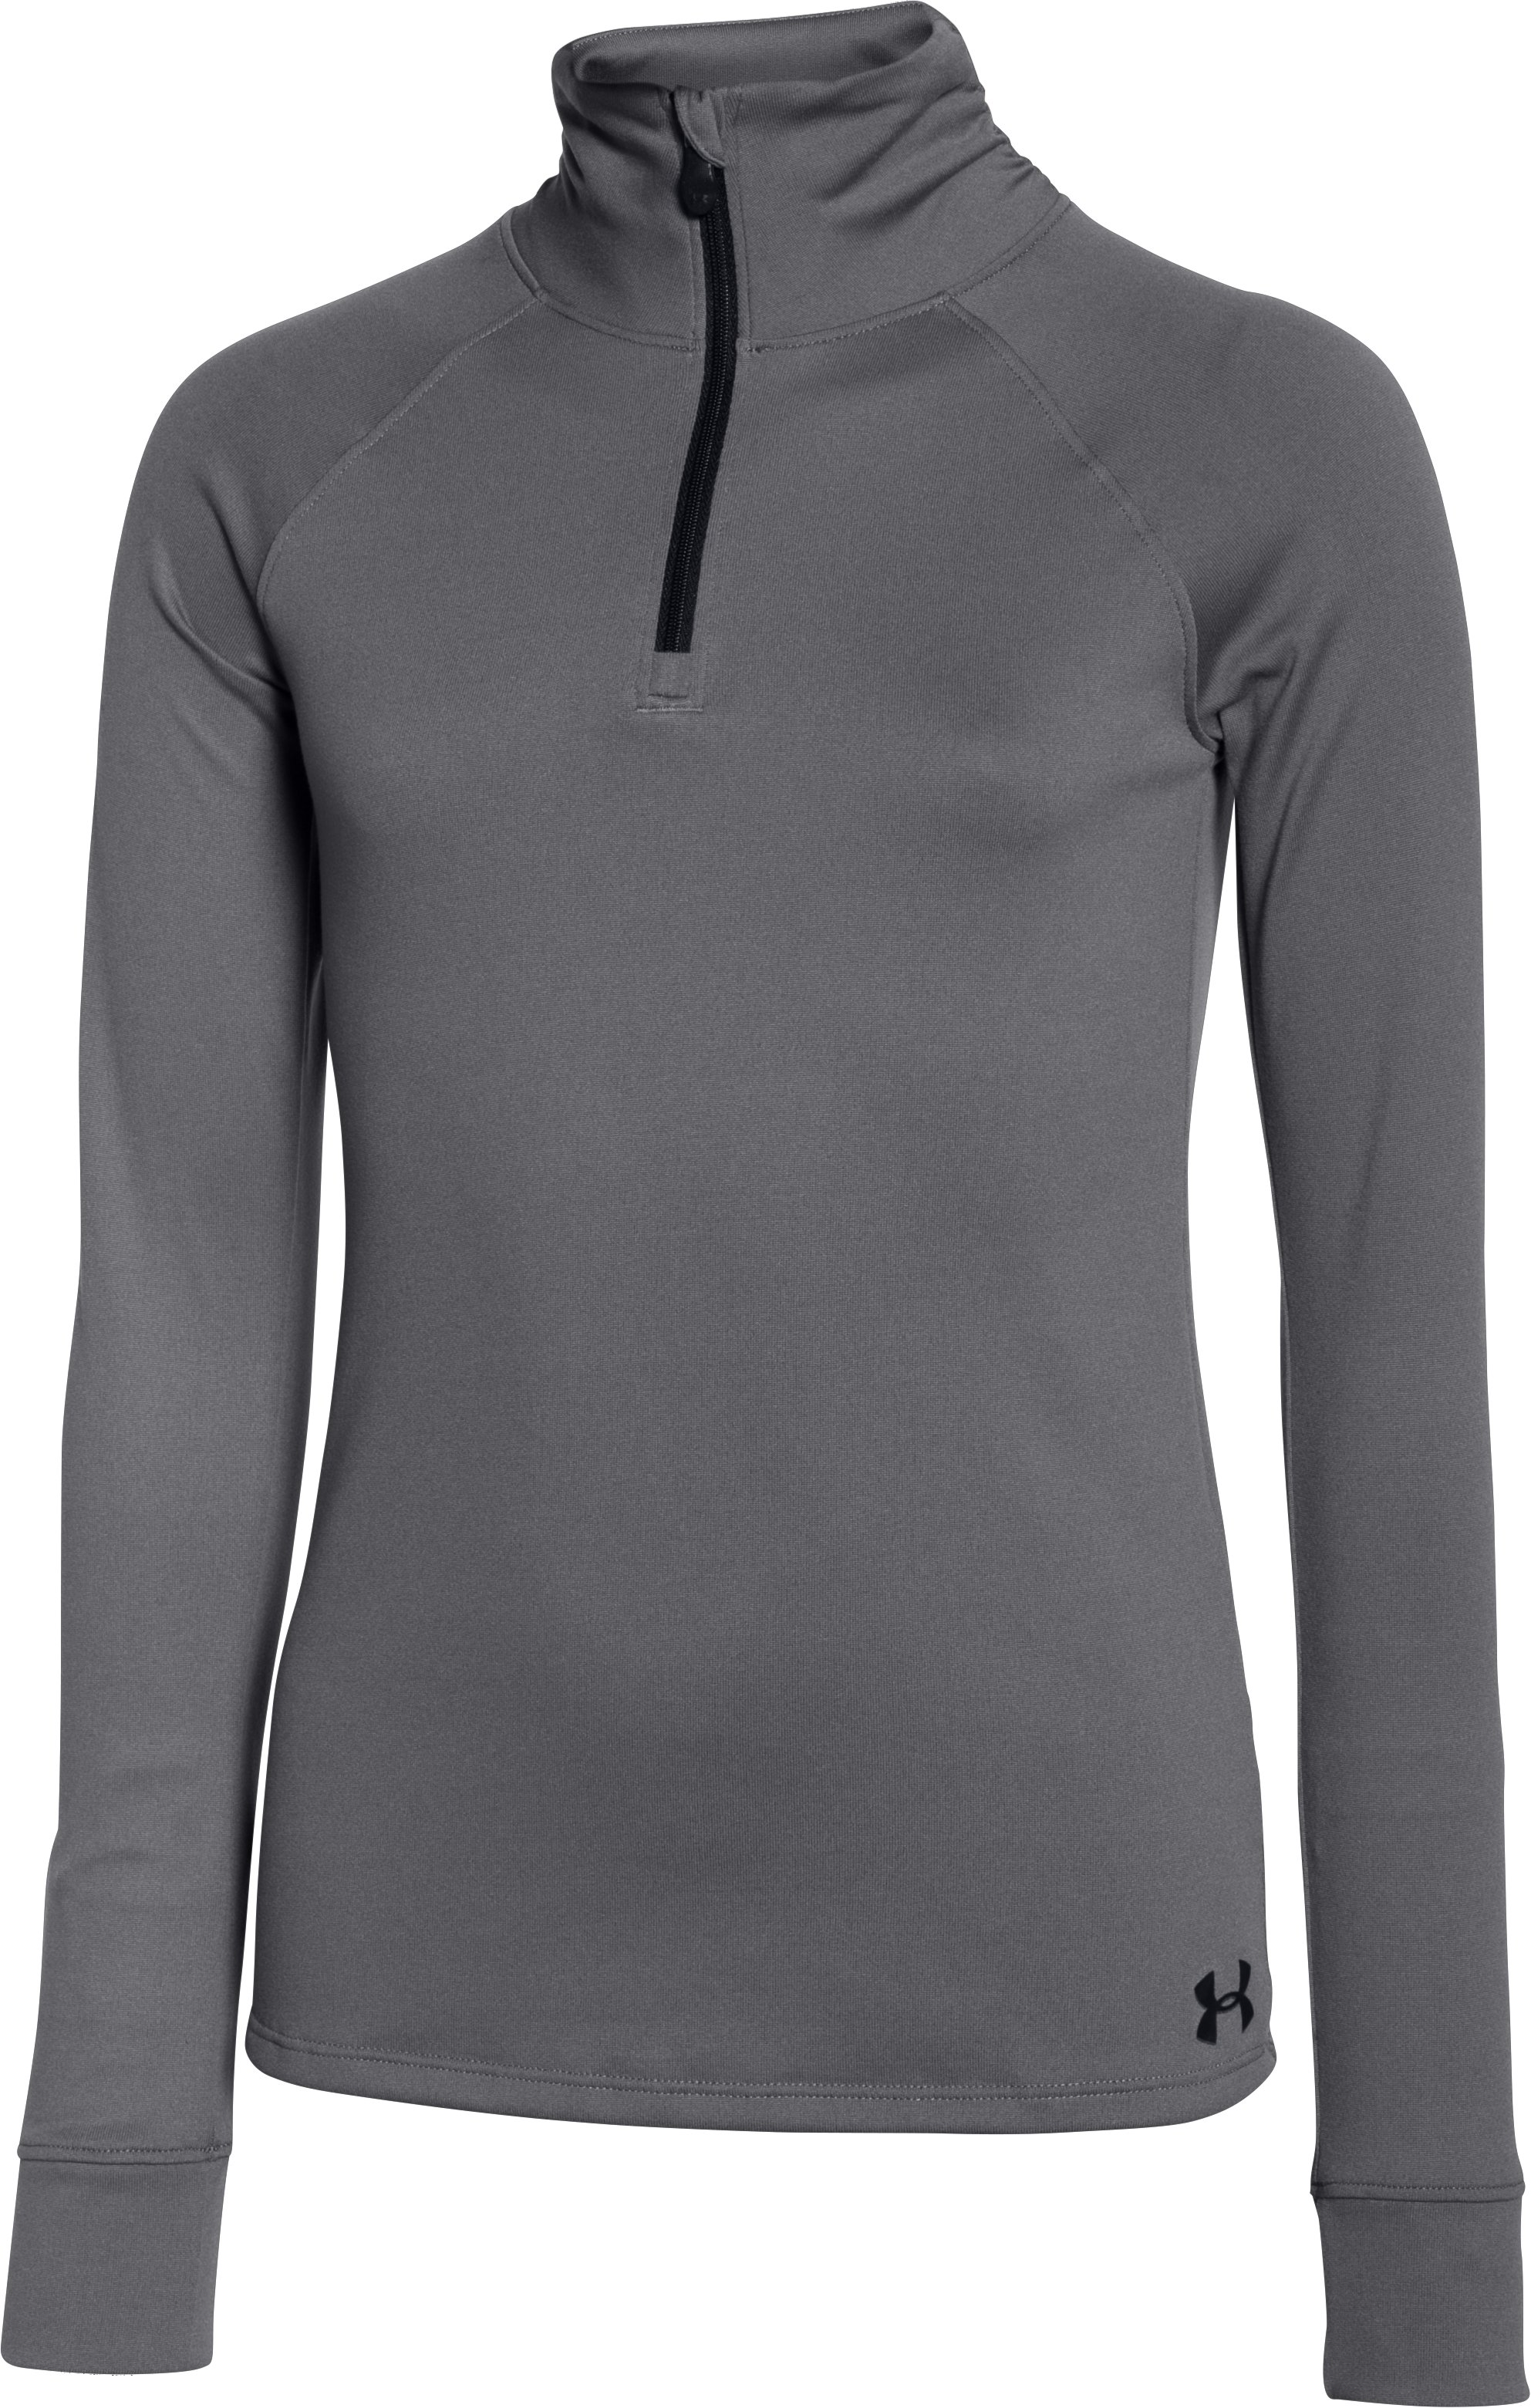 Girls' UA Tech™ 1/4 Zip, Graphite, zoomed image